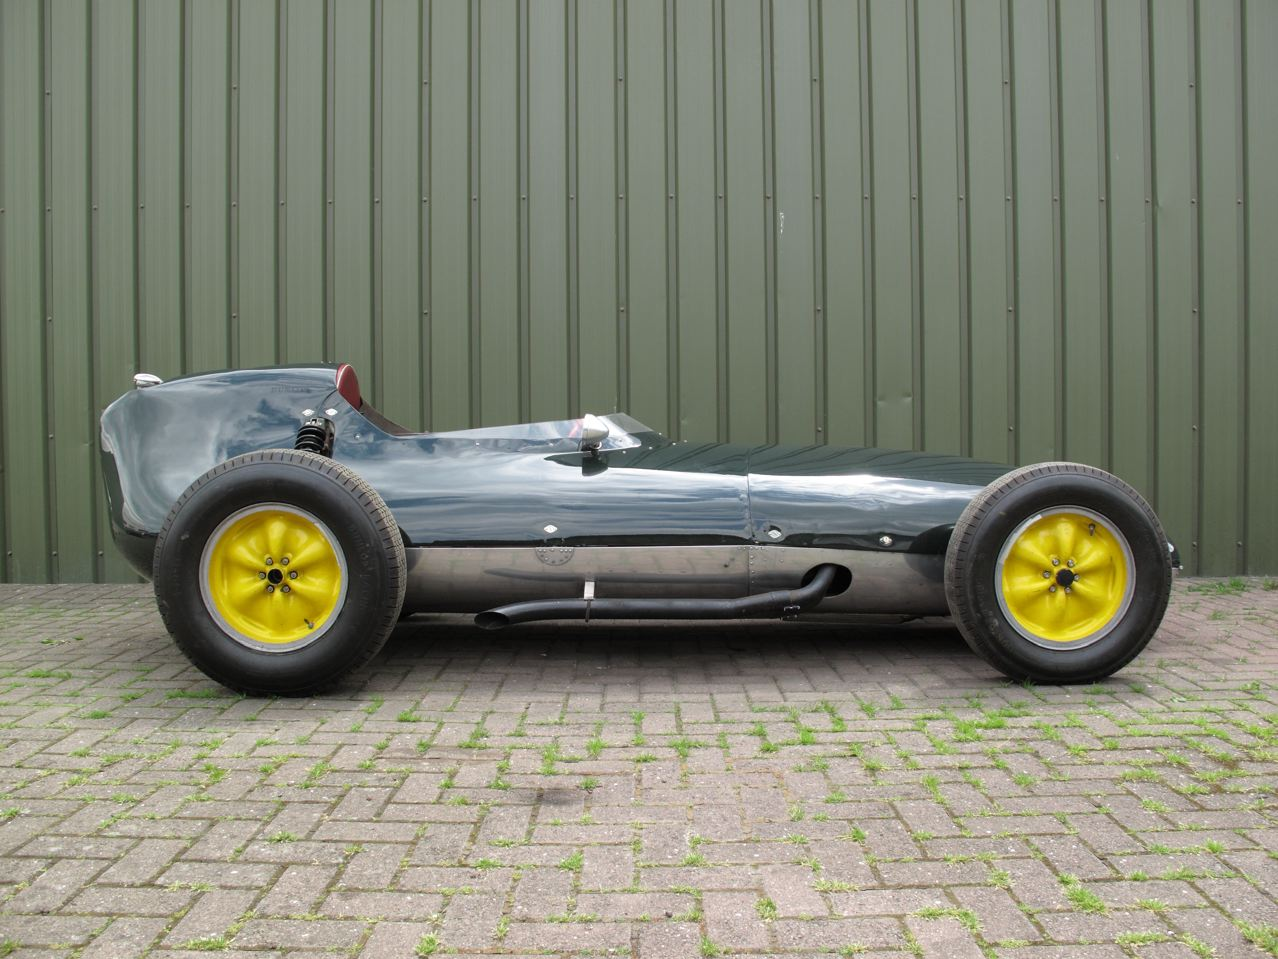 Classic Race Car For Sale 1958 F2 Lotus 16 Retro Race Cars